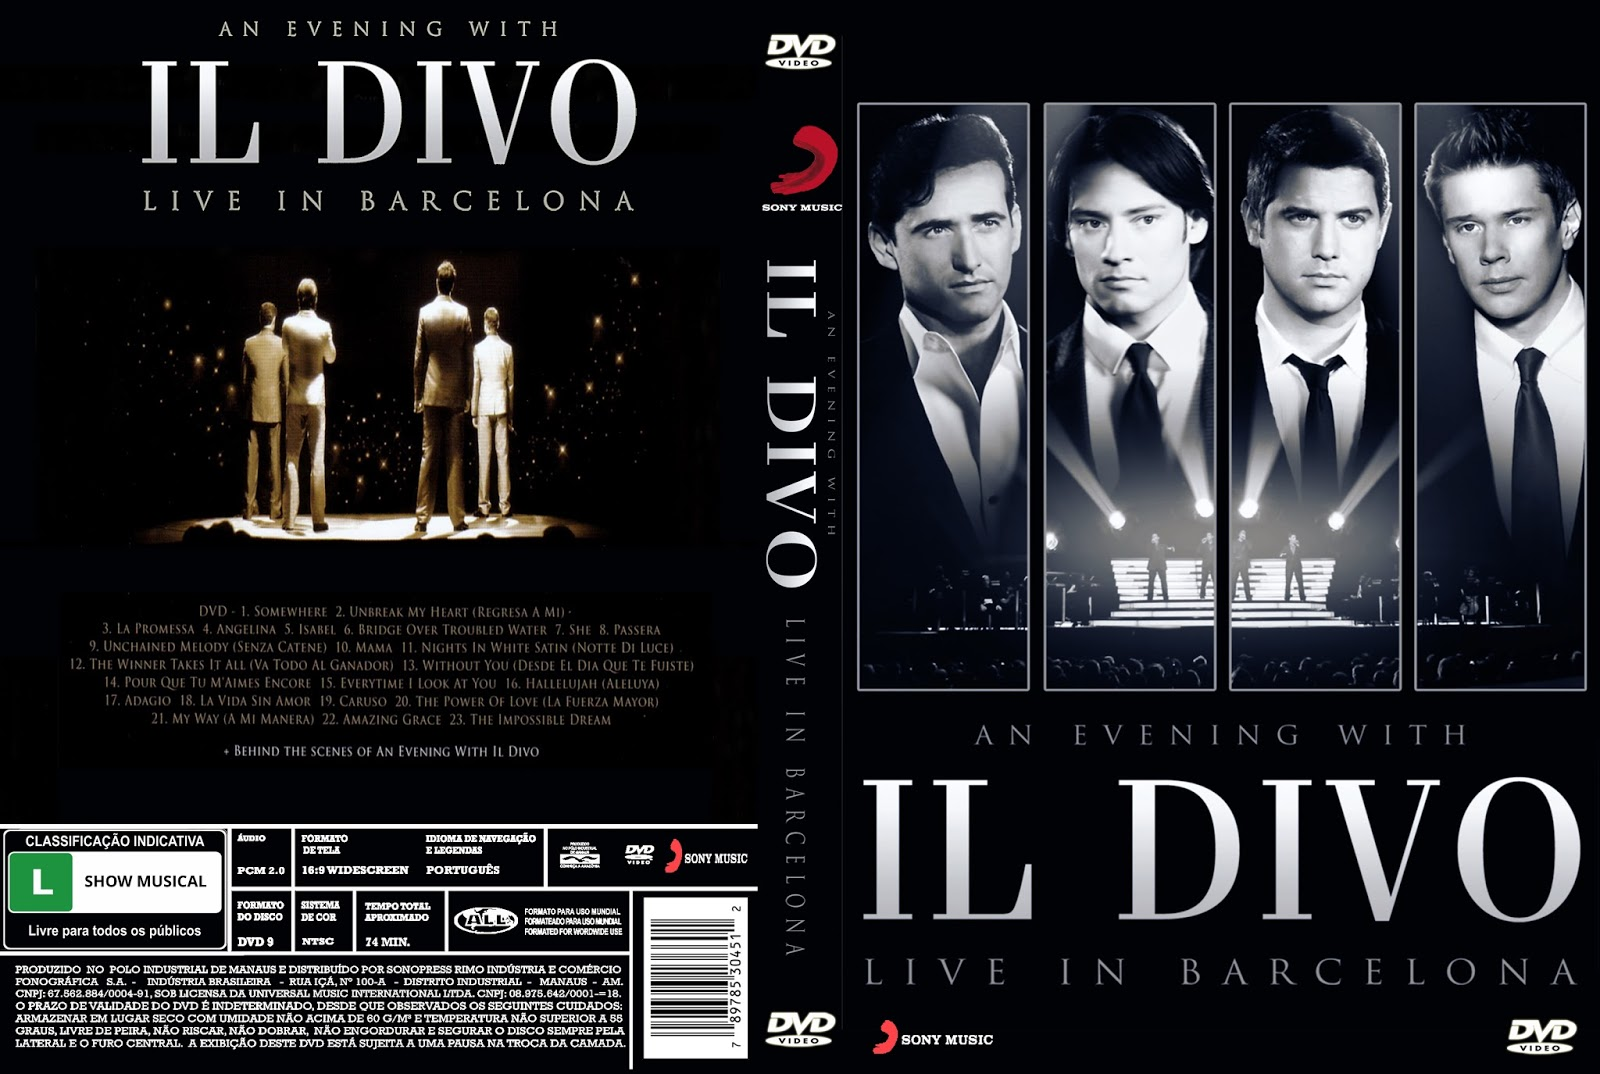 An evening with il divo live in barcelona gigante das - An evening with il divo ...